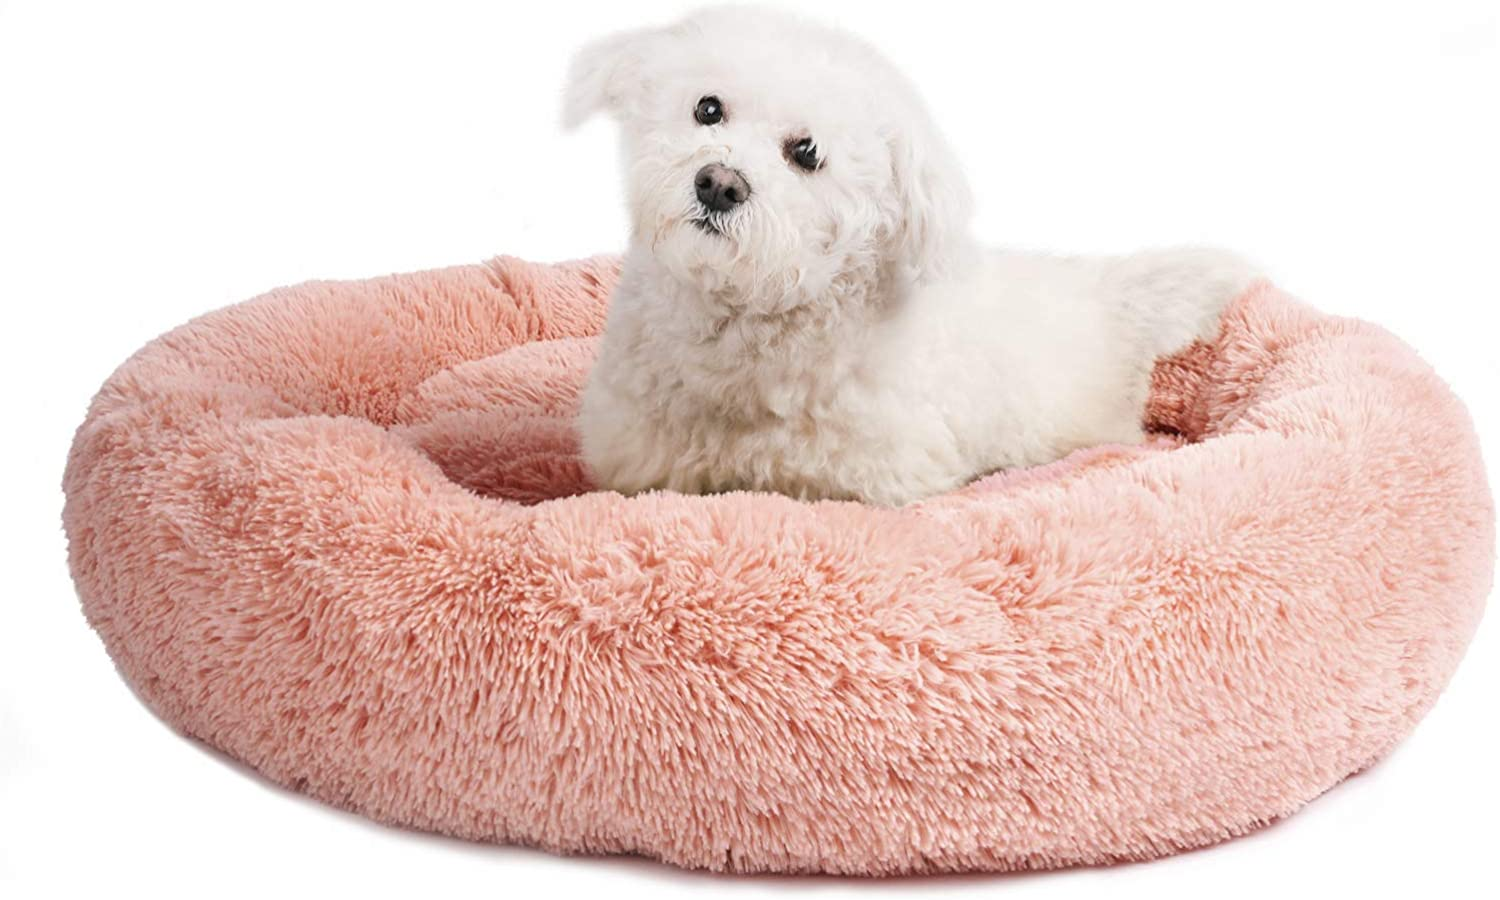 Veehoo Warming Round Dog Bed for Cats Tampa Mall Dogs Medium Washington Mall F Luxurious